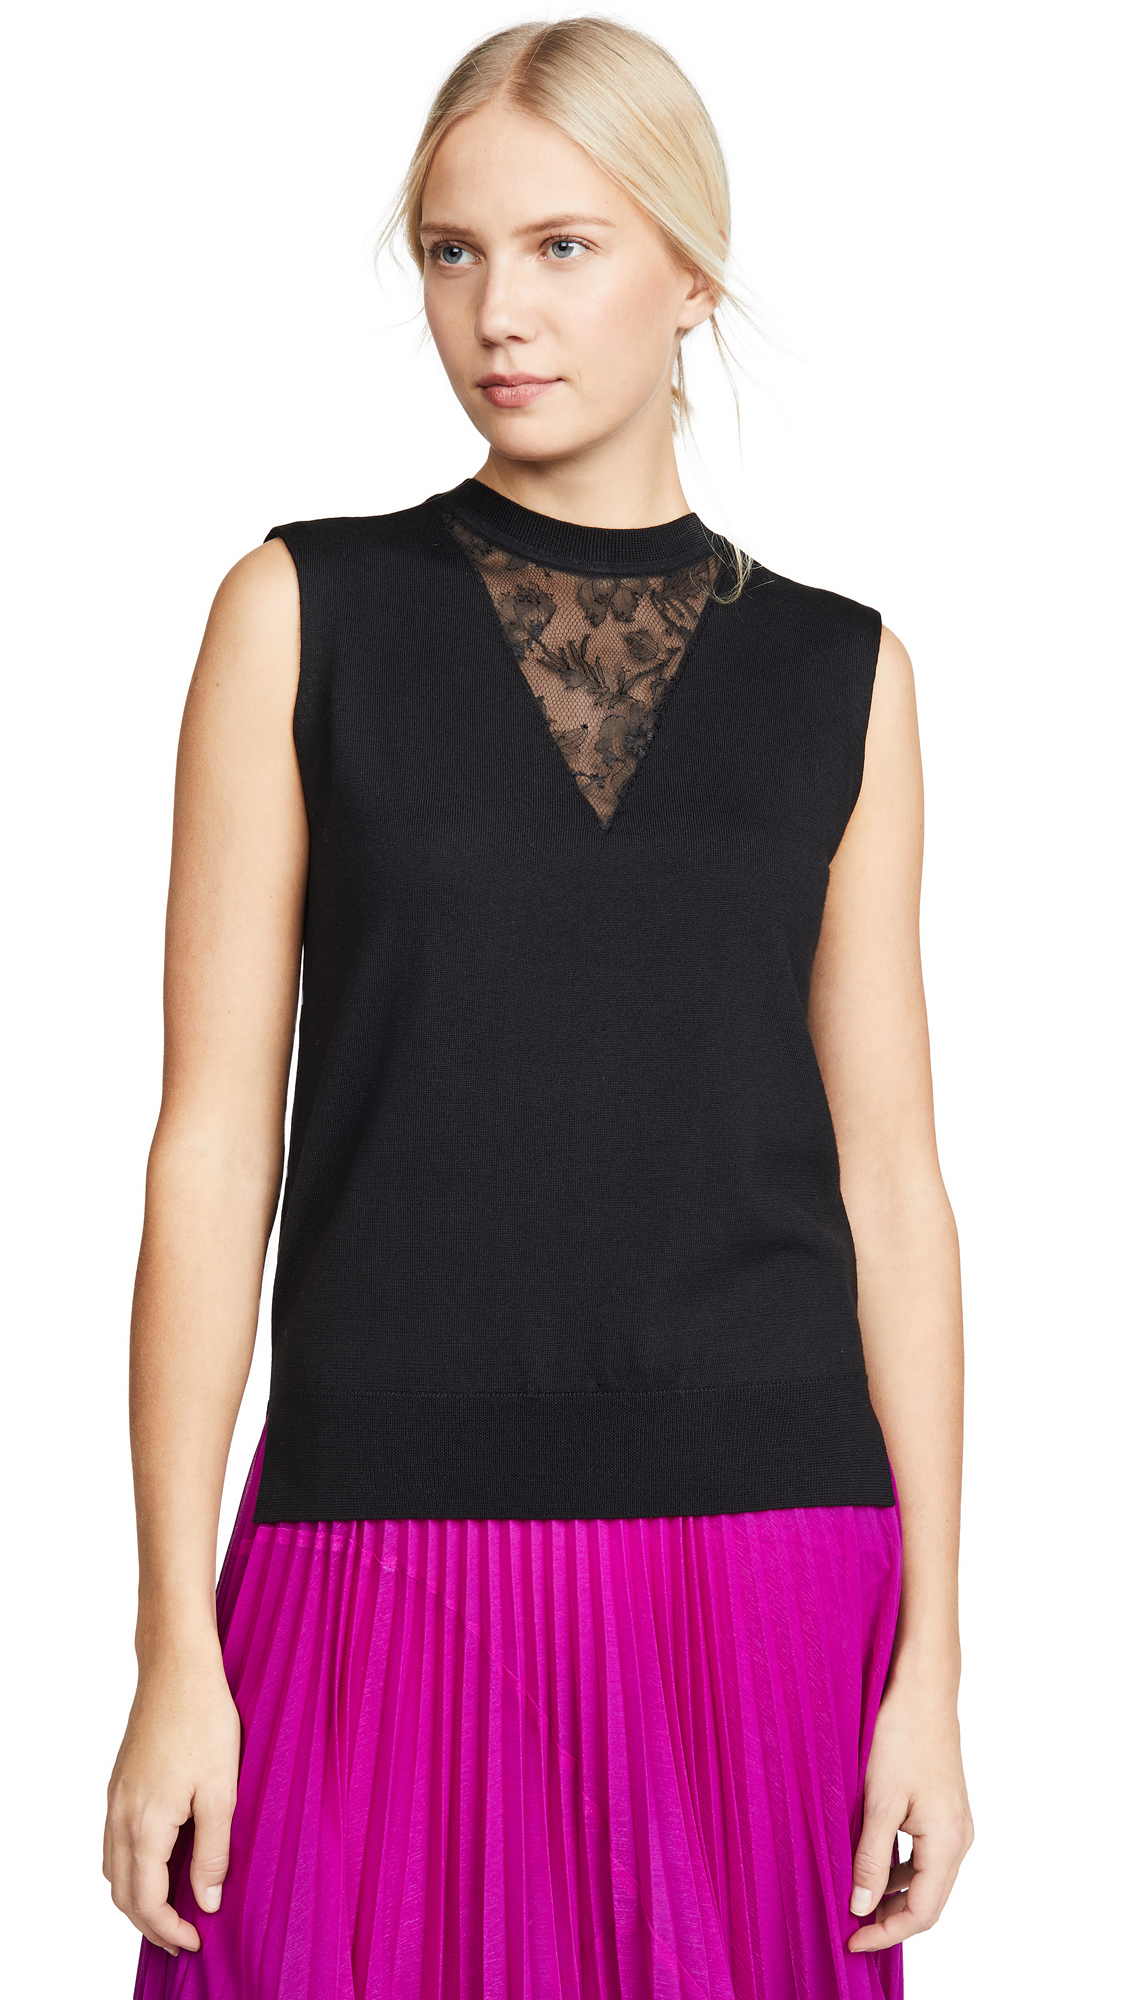 Adam Lippes Merino Wool Shell with Lace Trim - 60% Off Sale